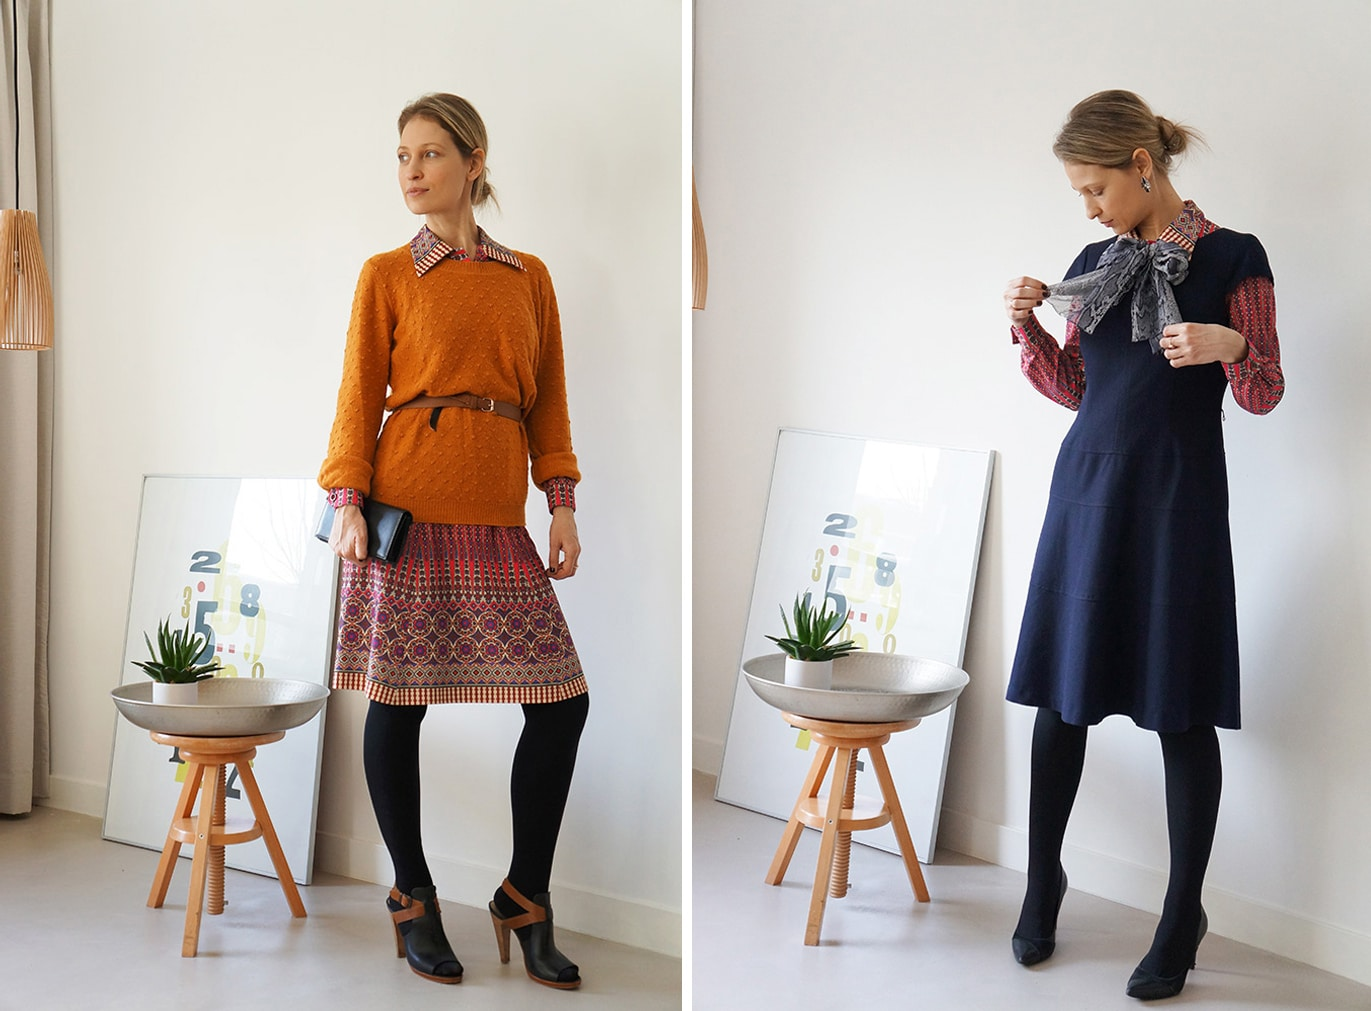 working with a personal stylist: one dress - 2 looks